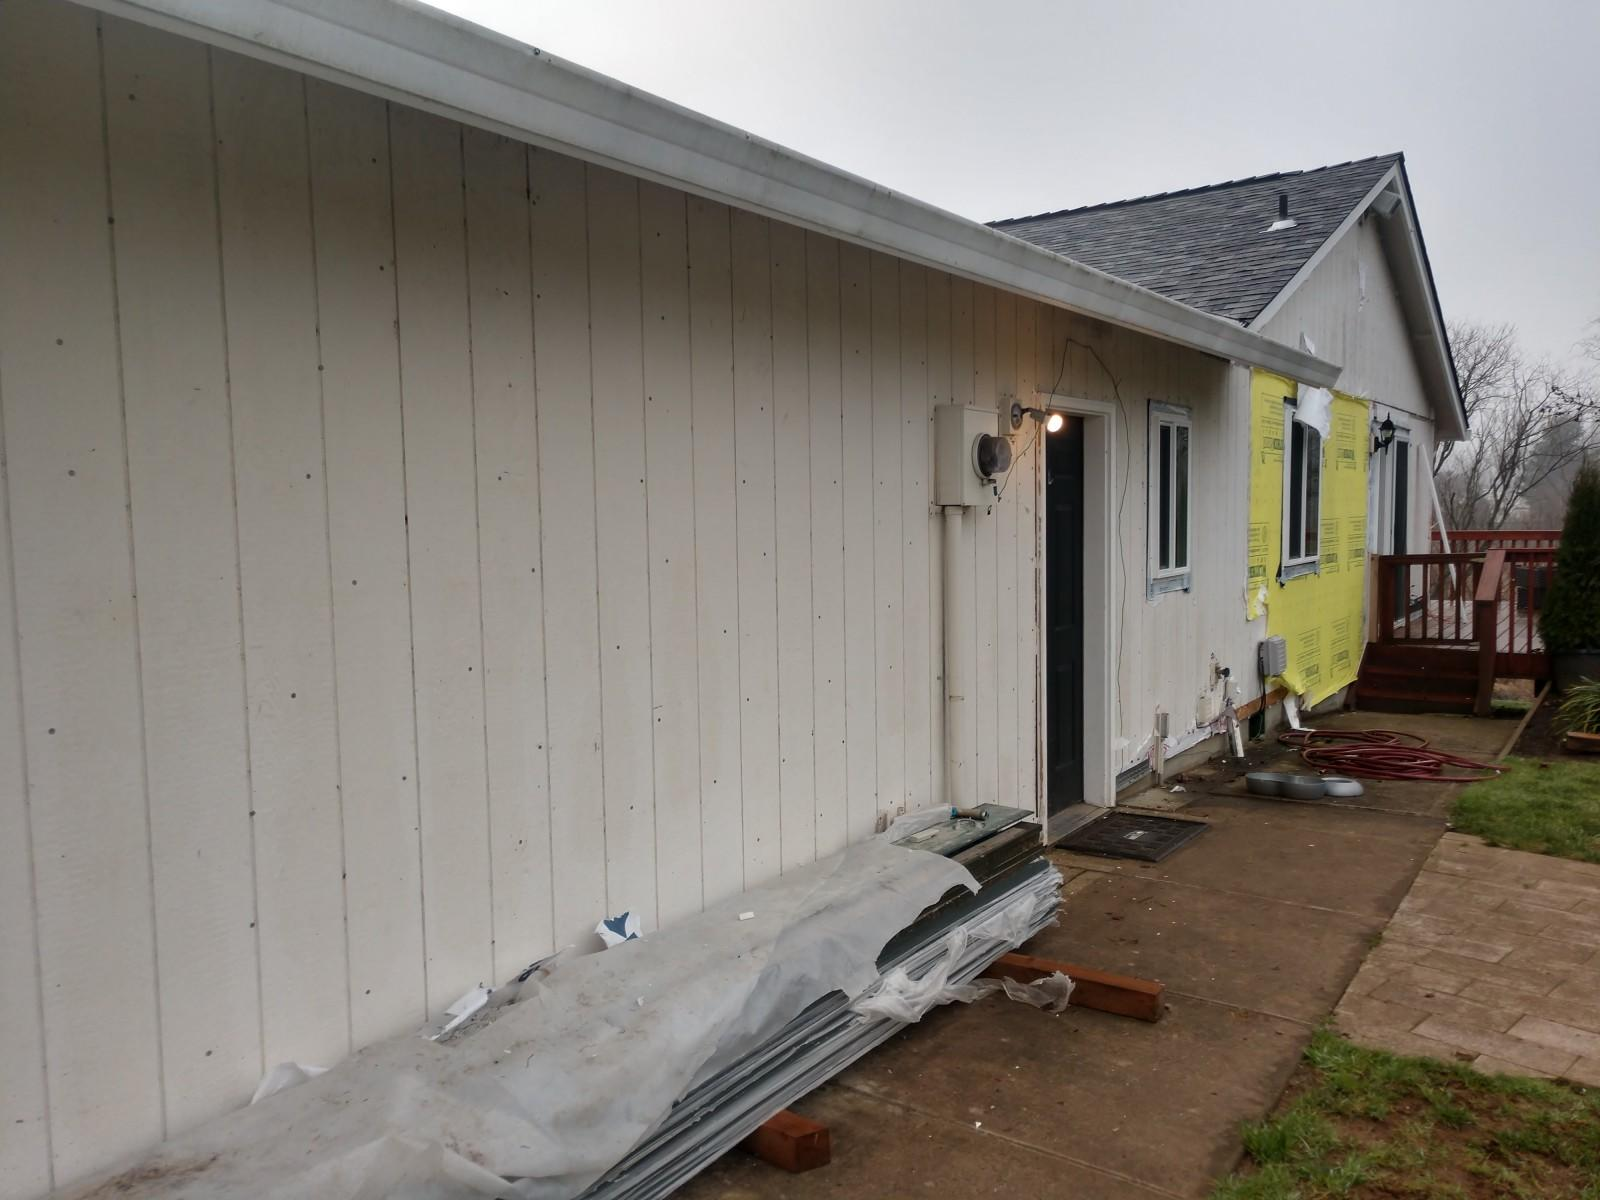 Vertical sheet siding on sides